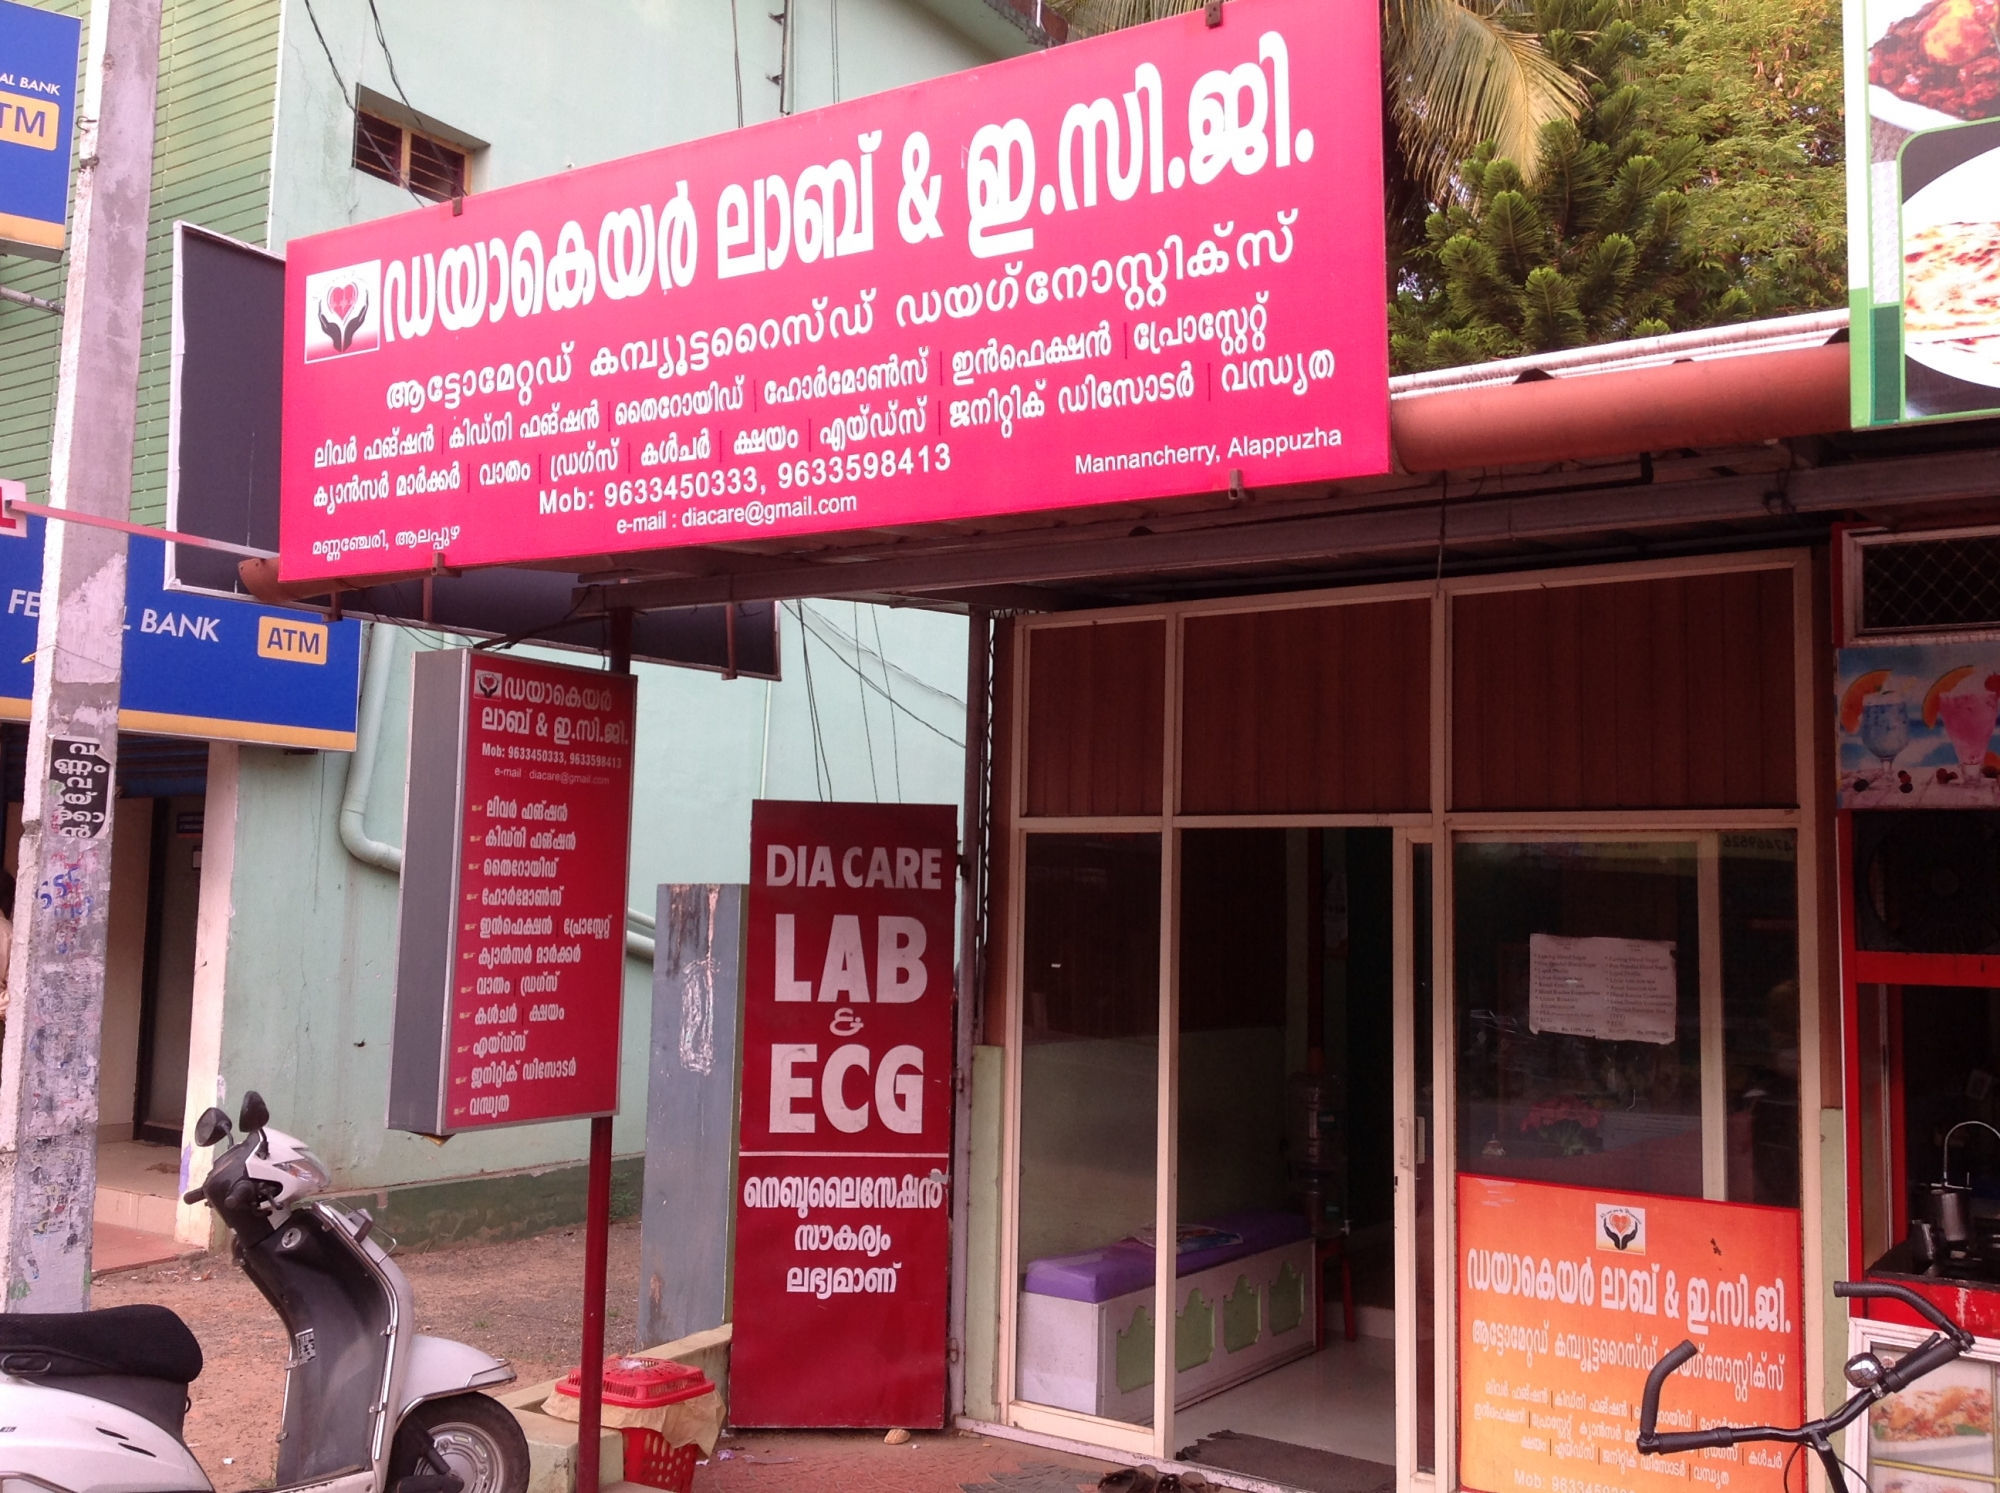 Dia Care, LABORATORY,  service in Mannancherry, Alappuzha